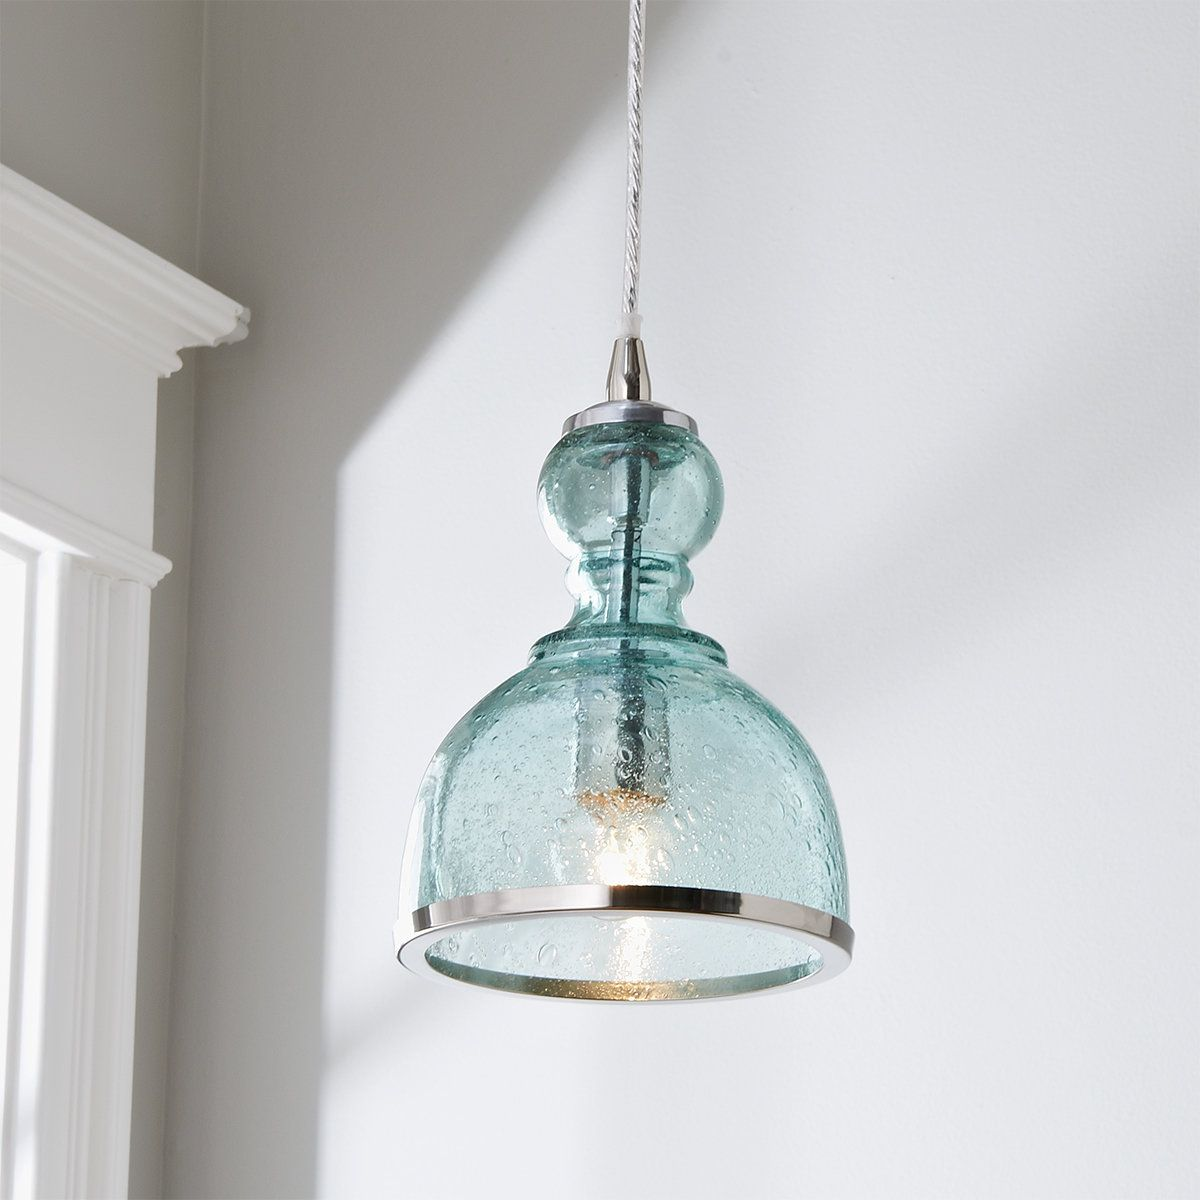 Our Colored Seeded Glass Pendant adds a fresh, clean look to your kitchen or dining area. Select from modern color combinations and sizes to customize your look or group together for a major statement! Clean with dry cloth only.